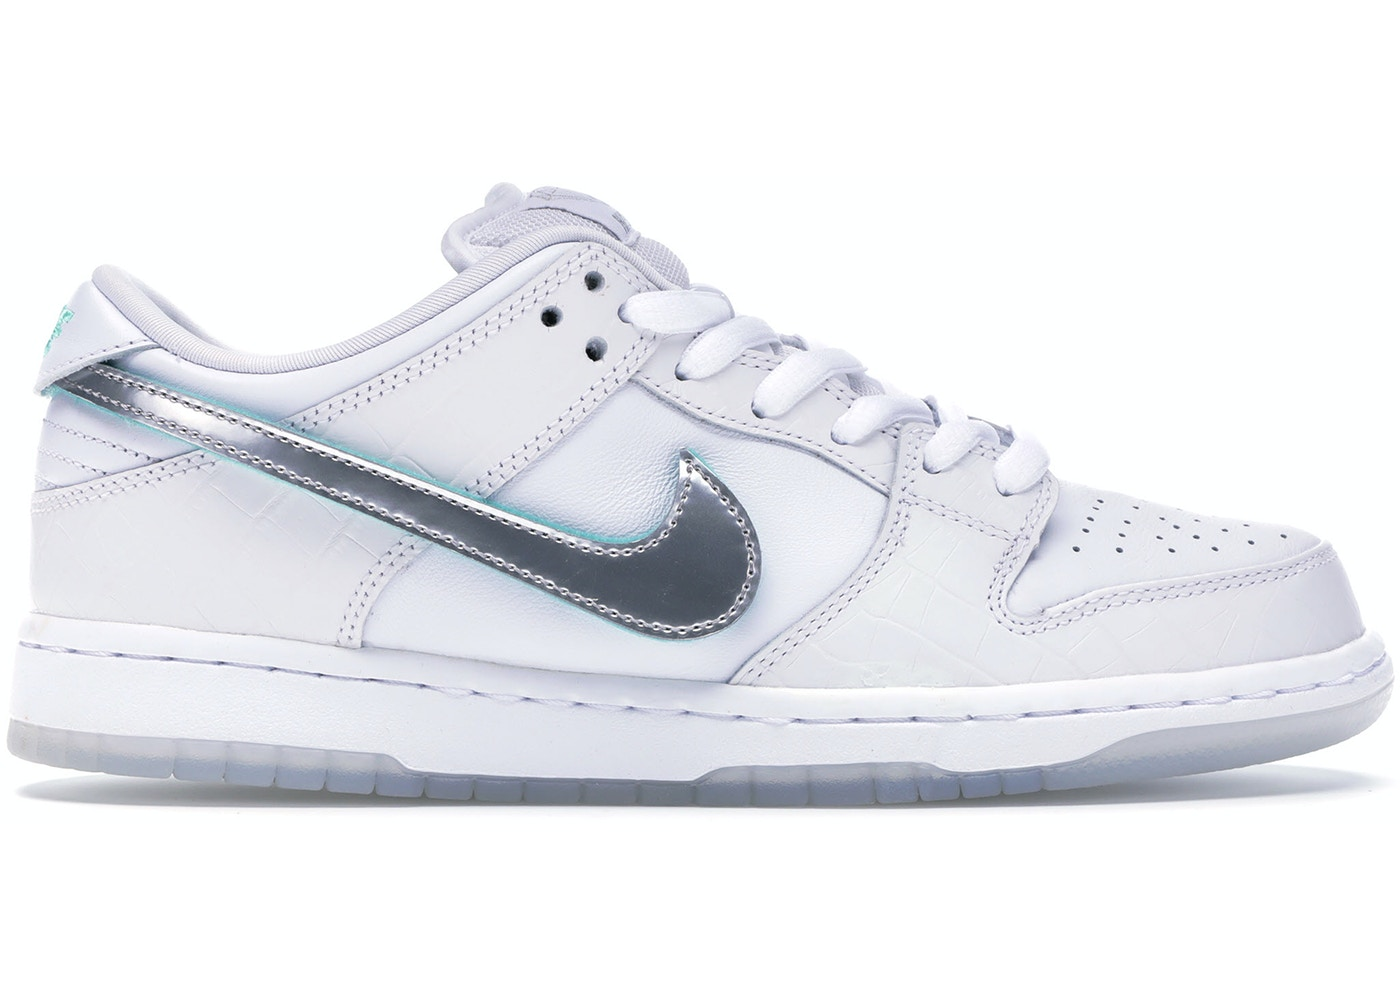 newest 9c027 46801 Buy Nike SB Shoes  Deadstock Sneakers